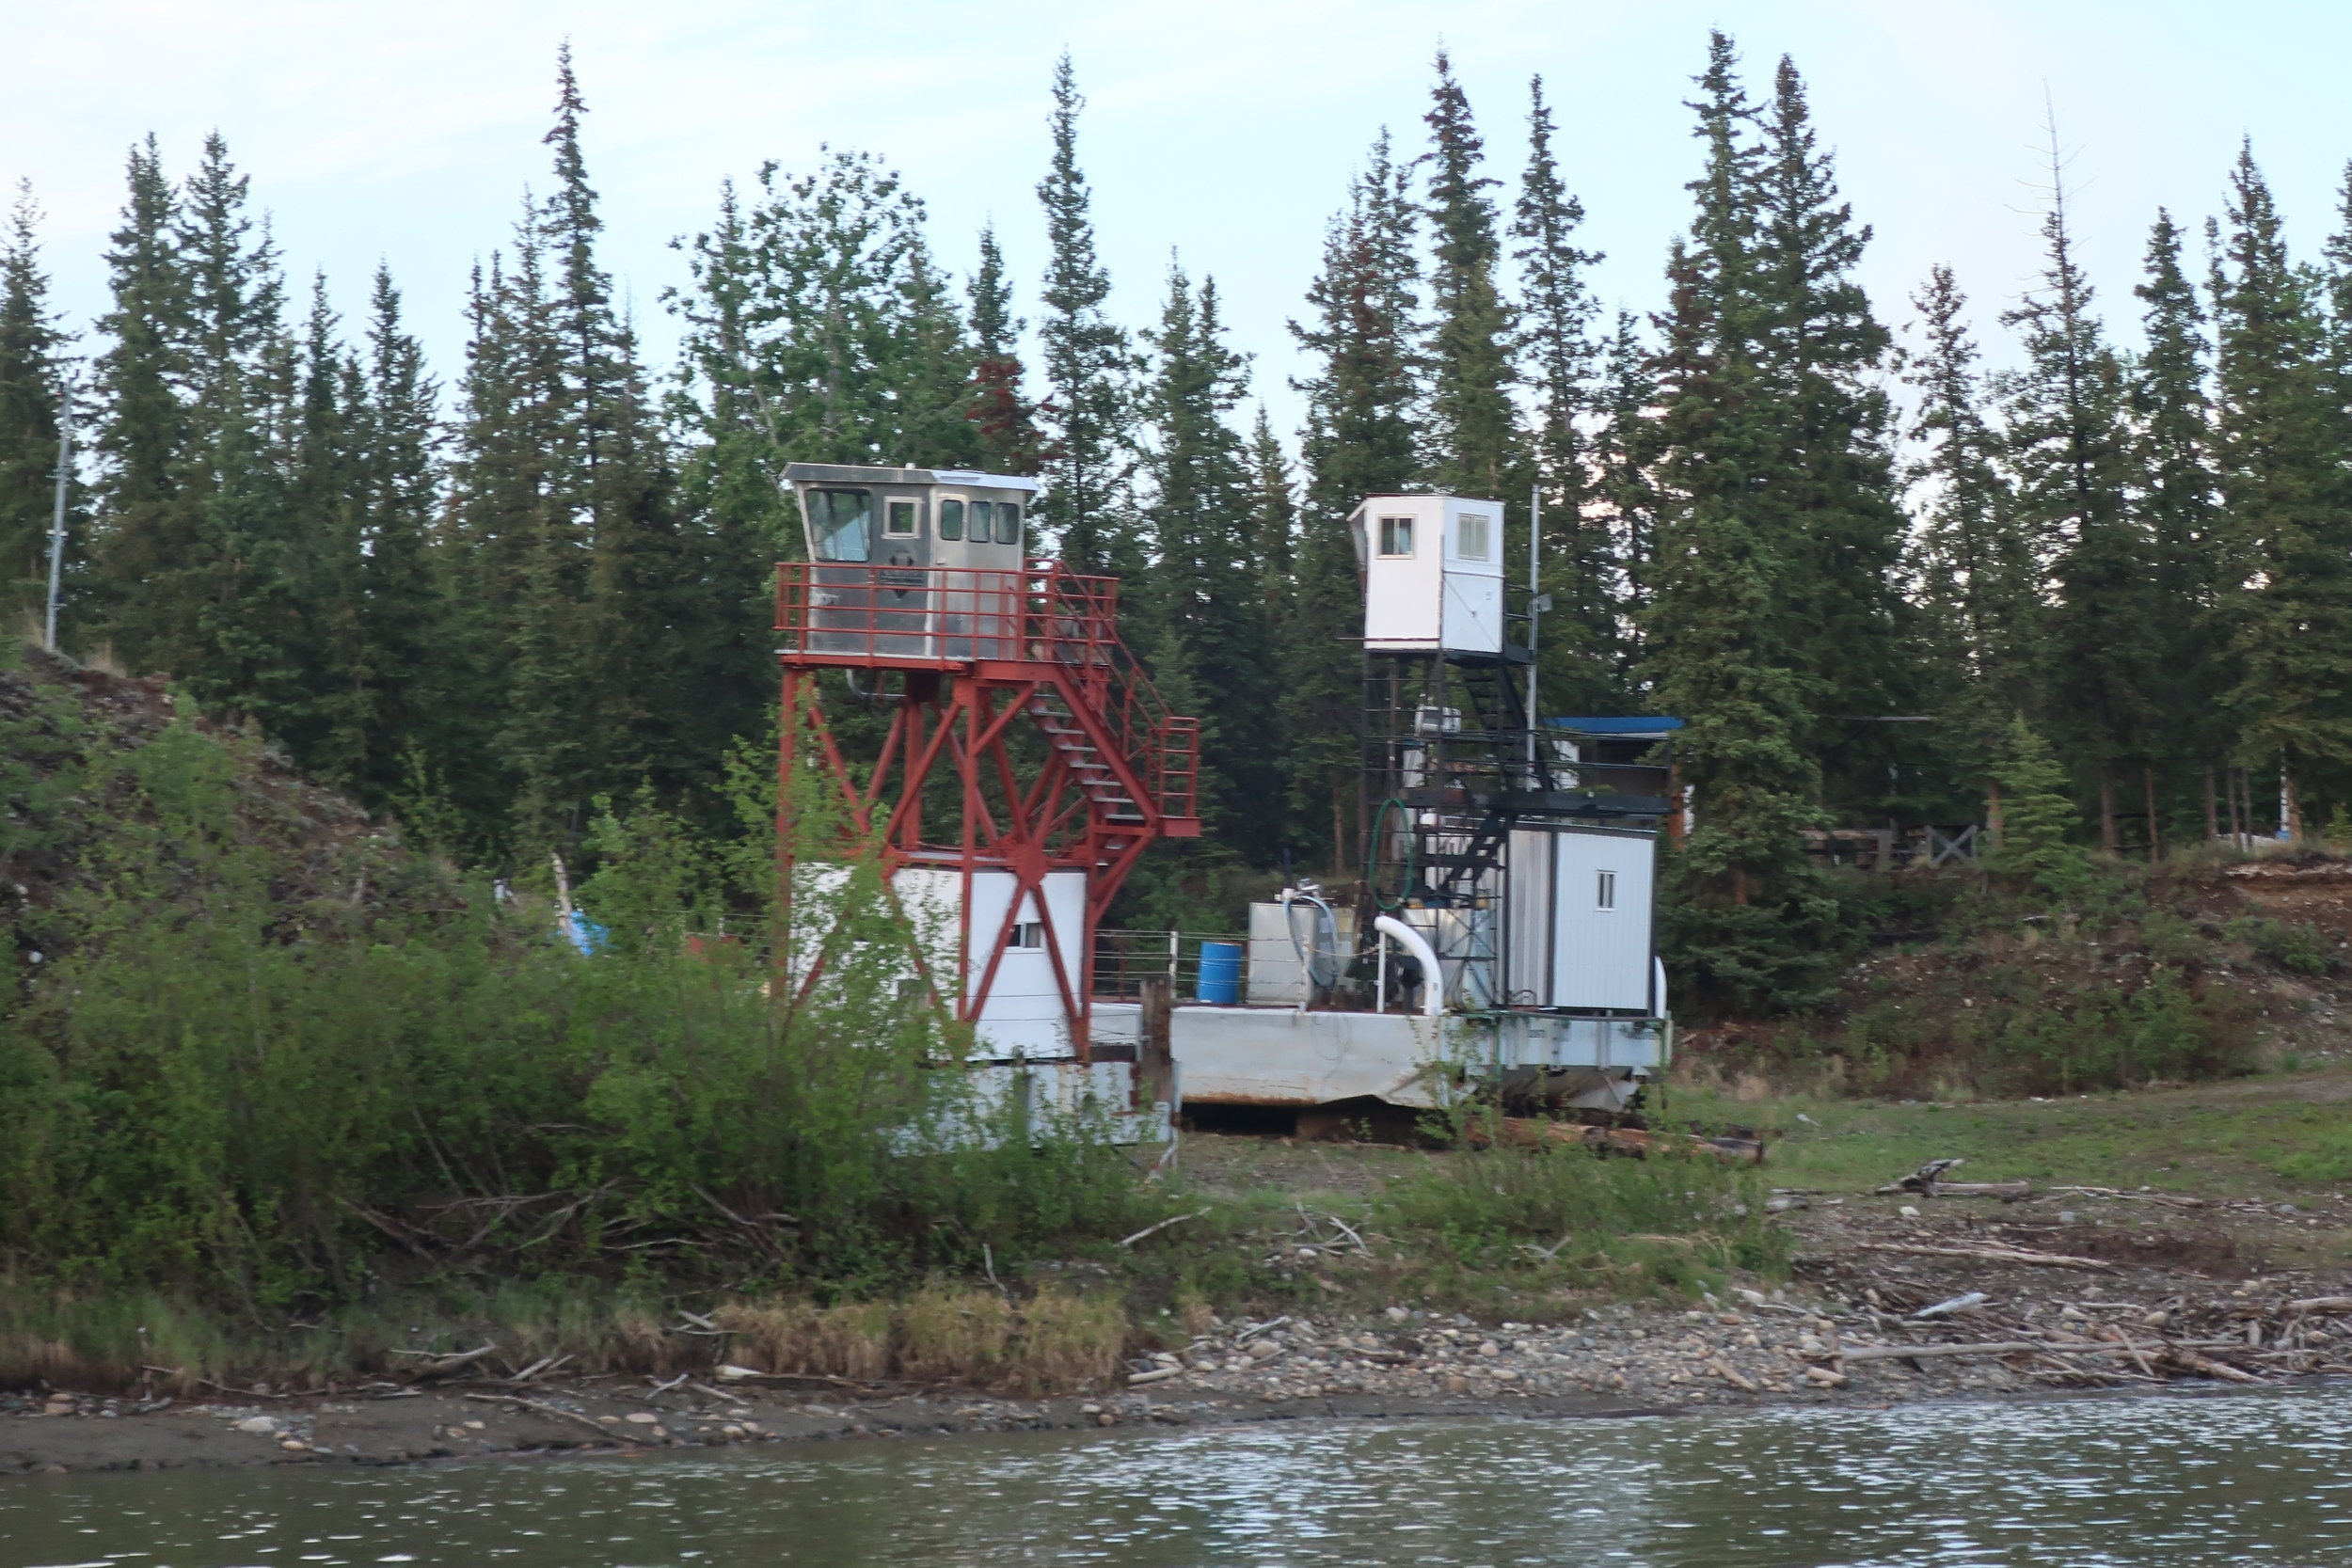 Cowboy and Tom's barge hauled up for the winter on McCabe Creek